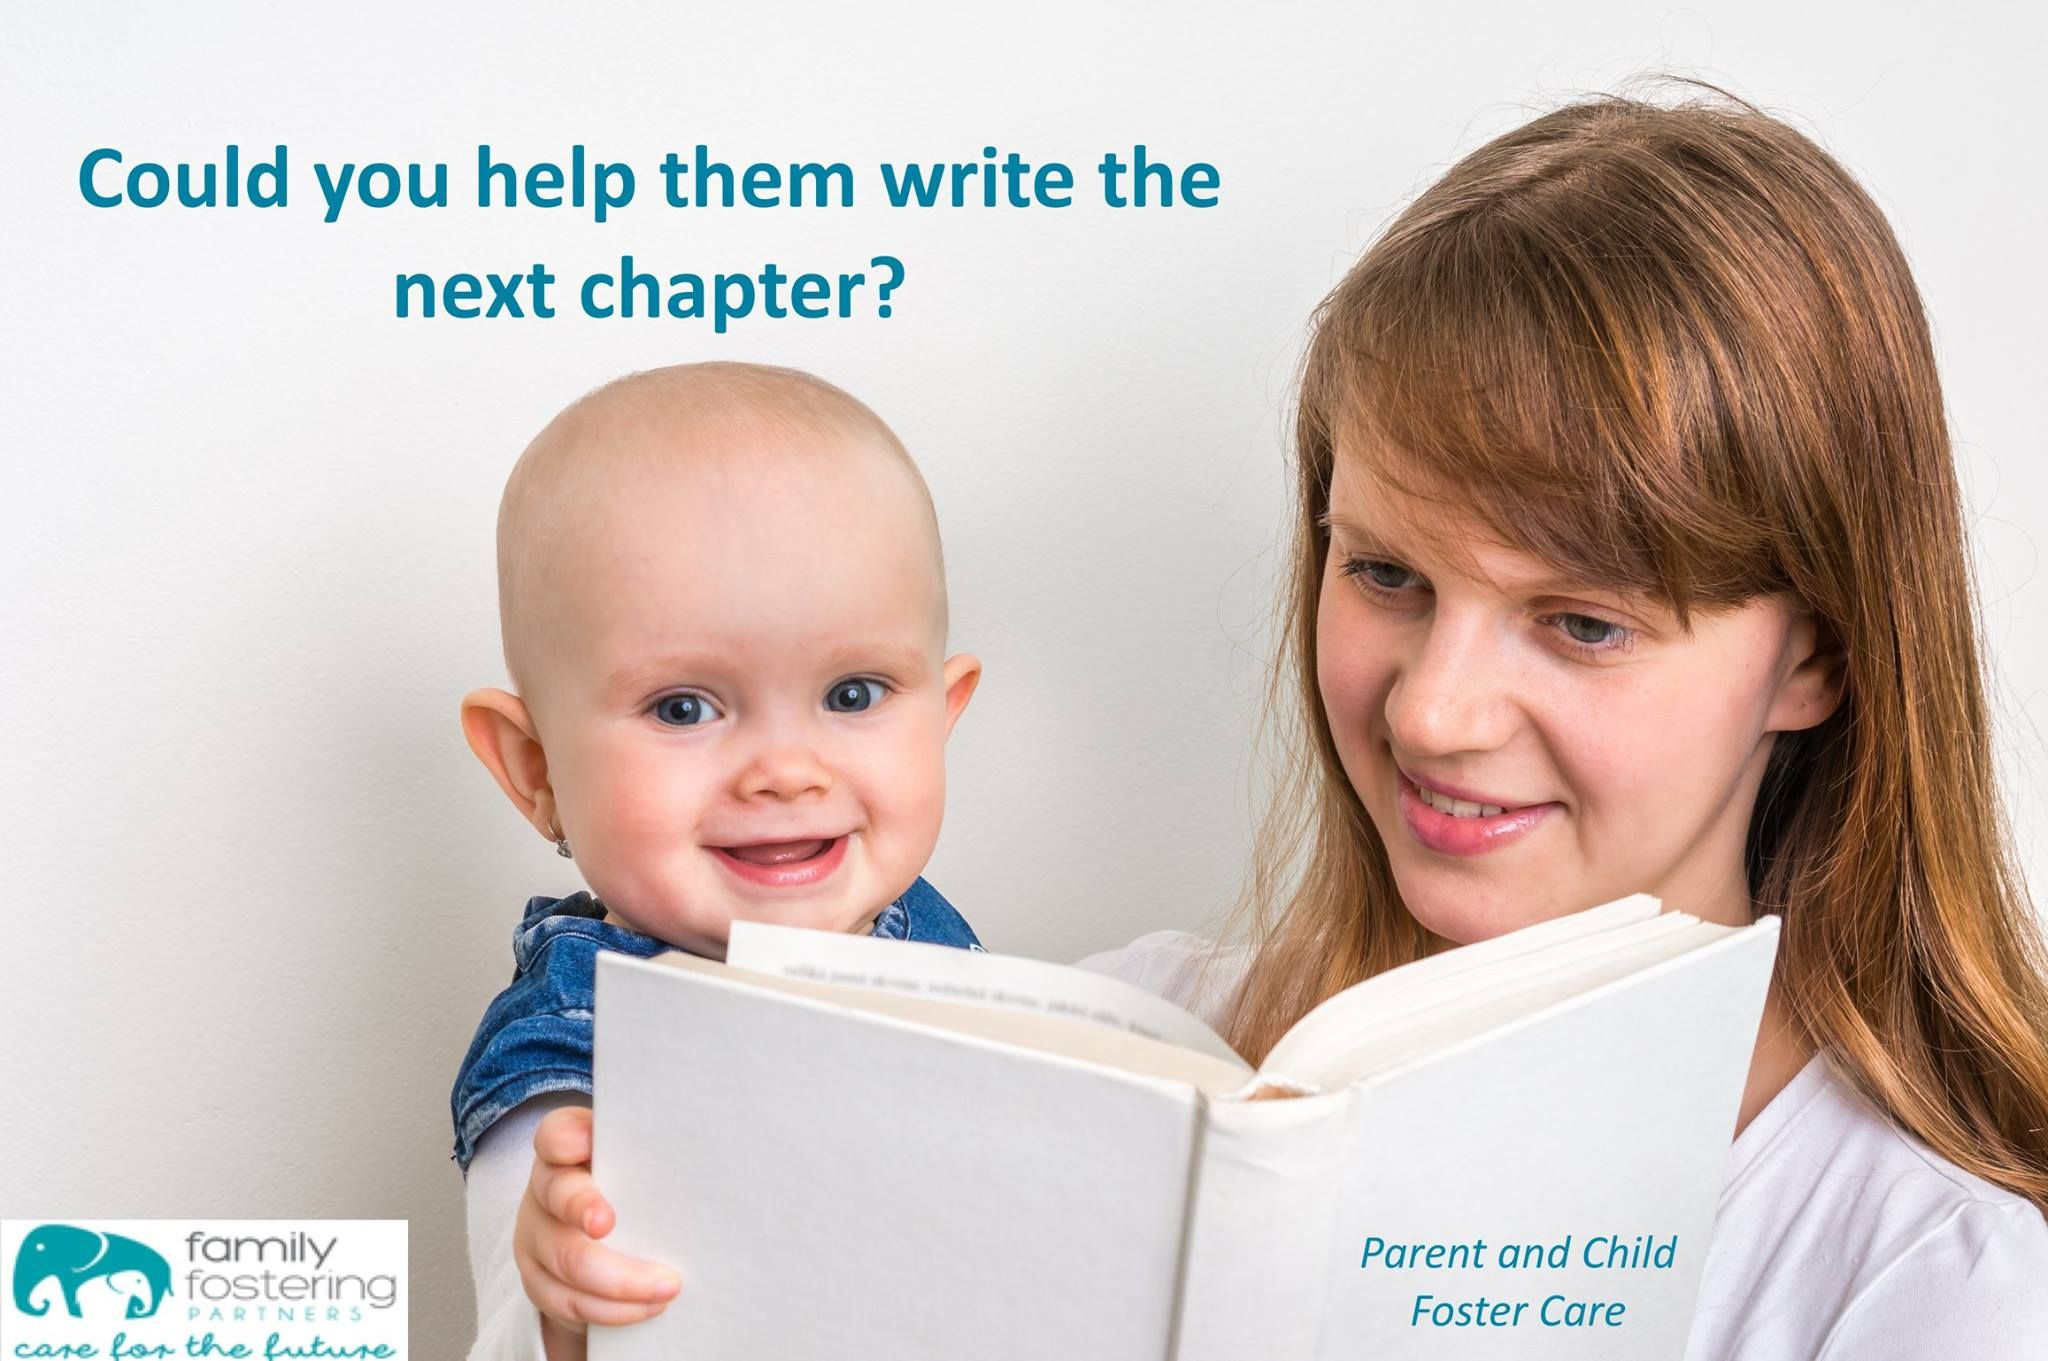 Could you help a child write the next chapter in their